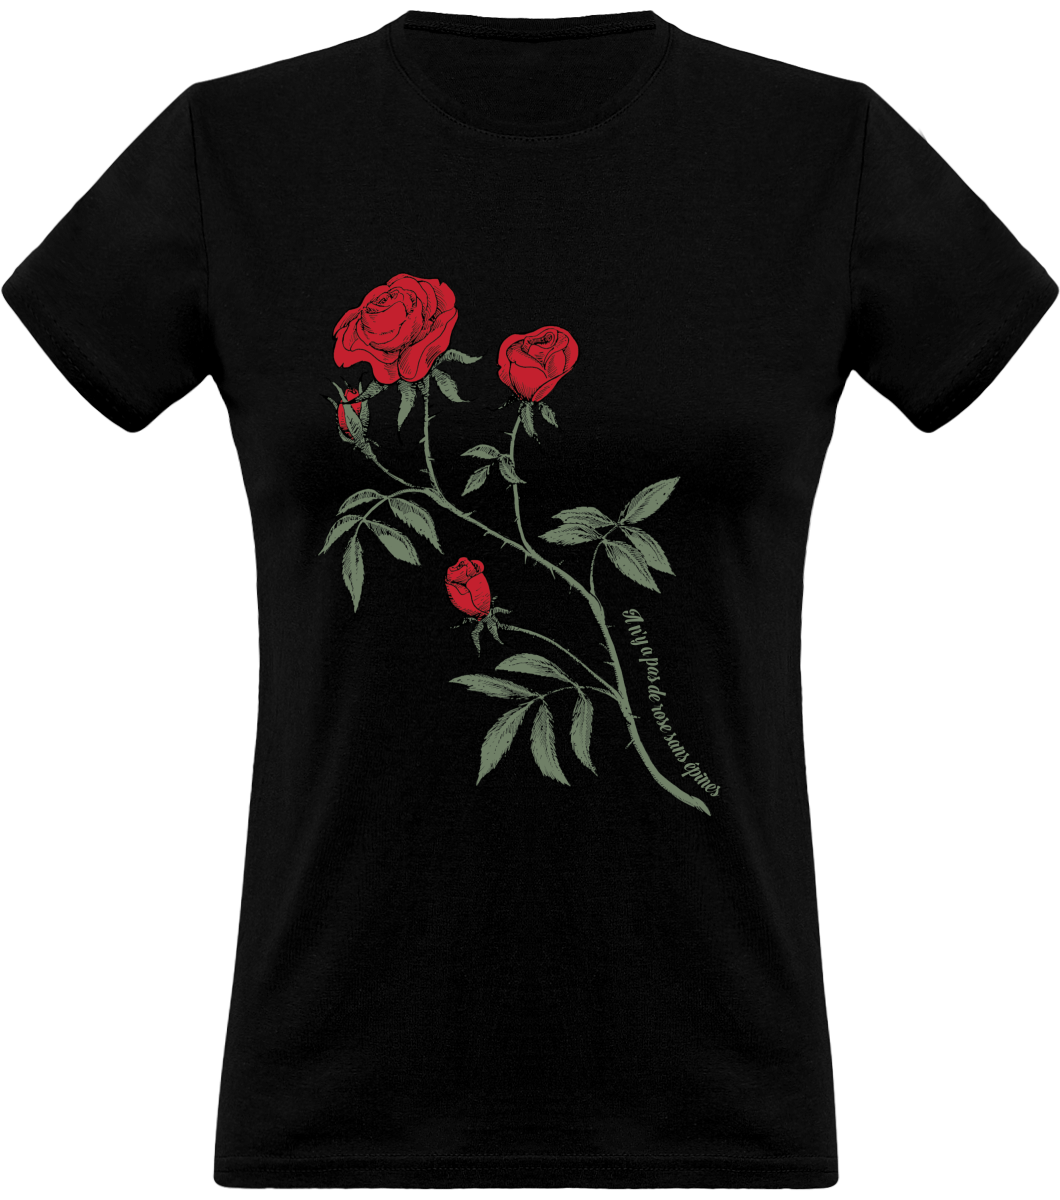 (new) T-shirt Femme 150g - Black Tshirt - Rose Design